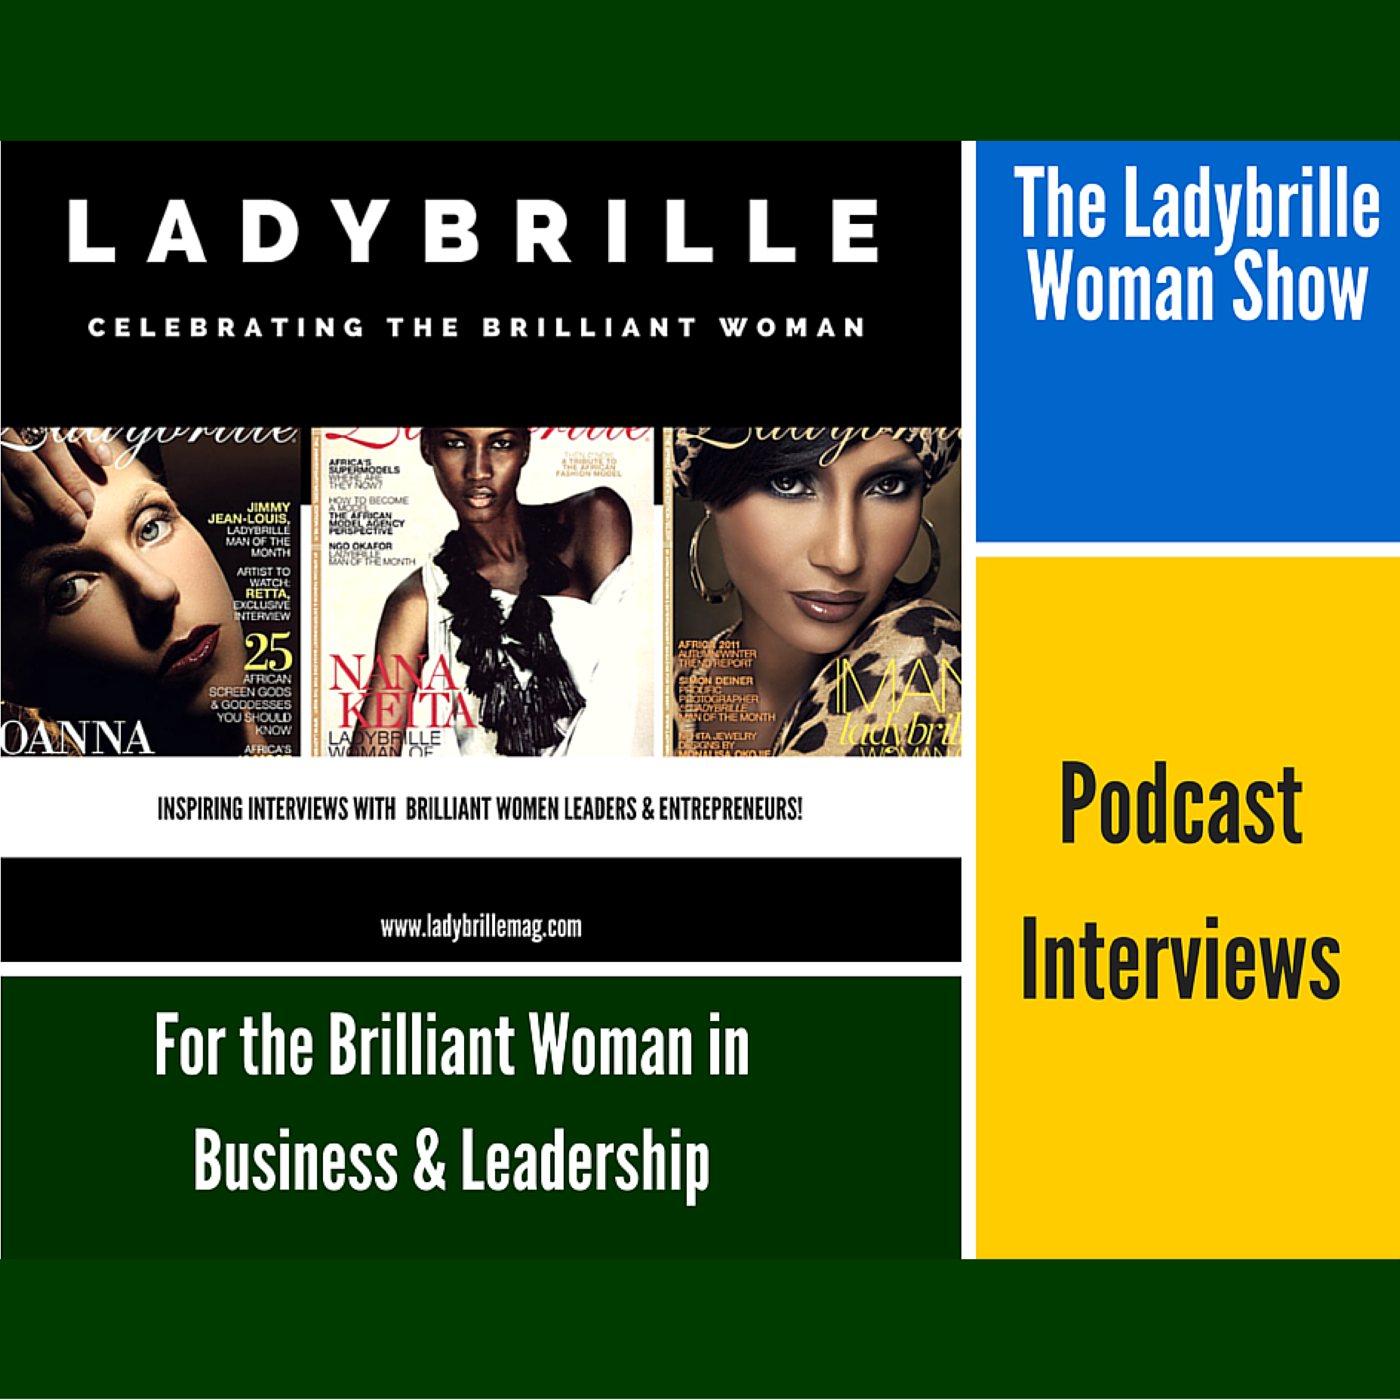 The Ladybrille Woman Show logo